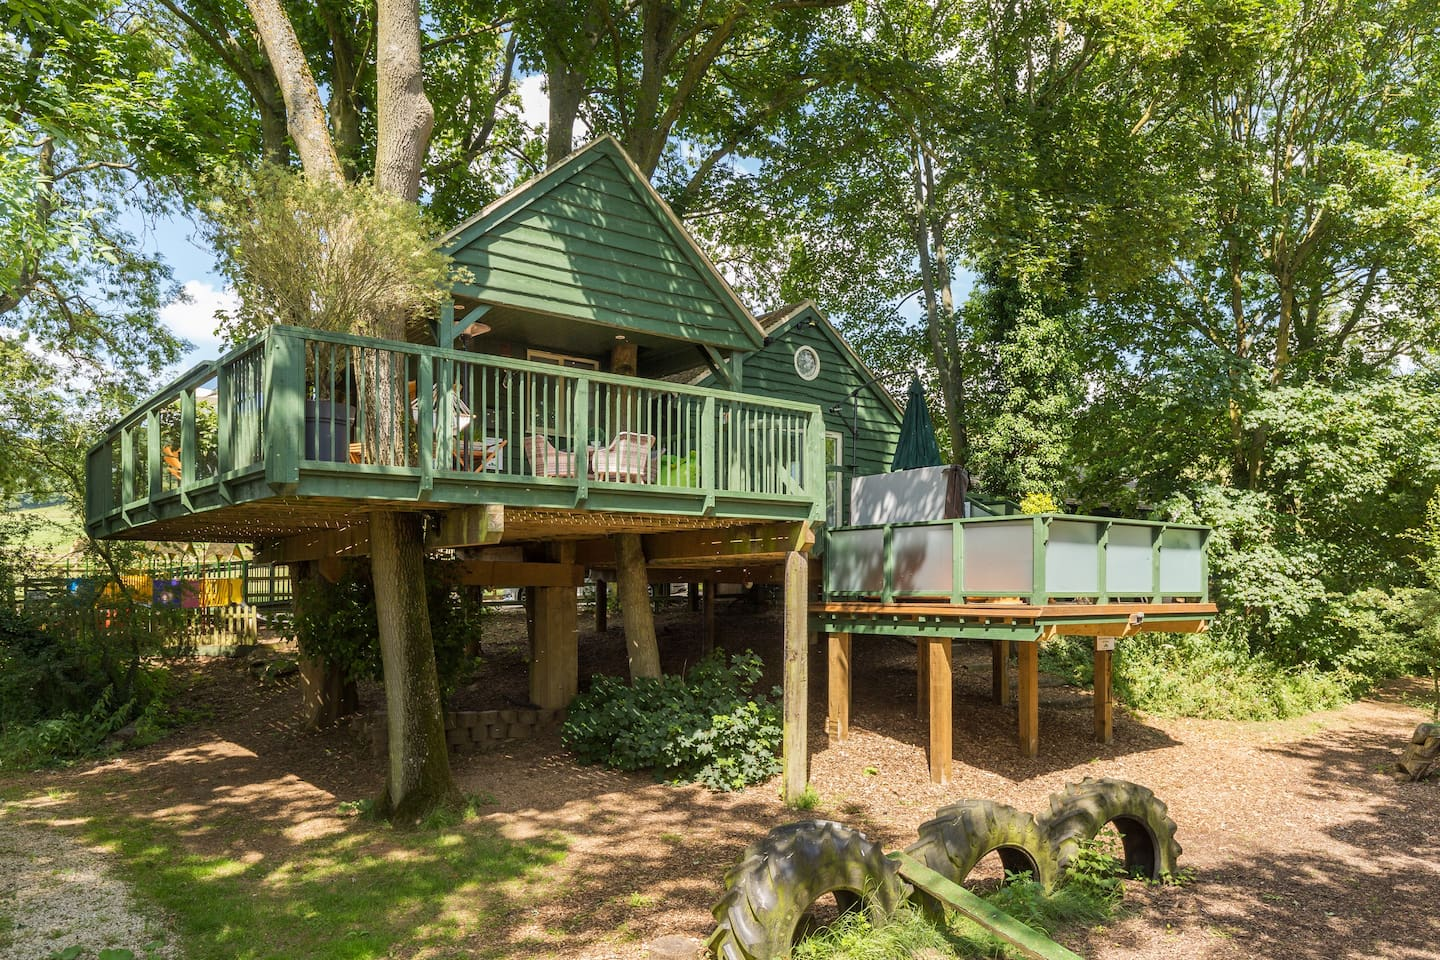 Will's Tree House at Winchcombe Farm in Upper Tysoe, Warwickshire